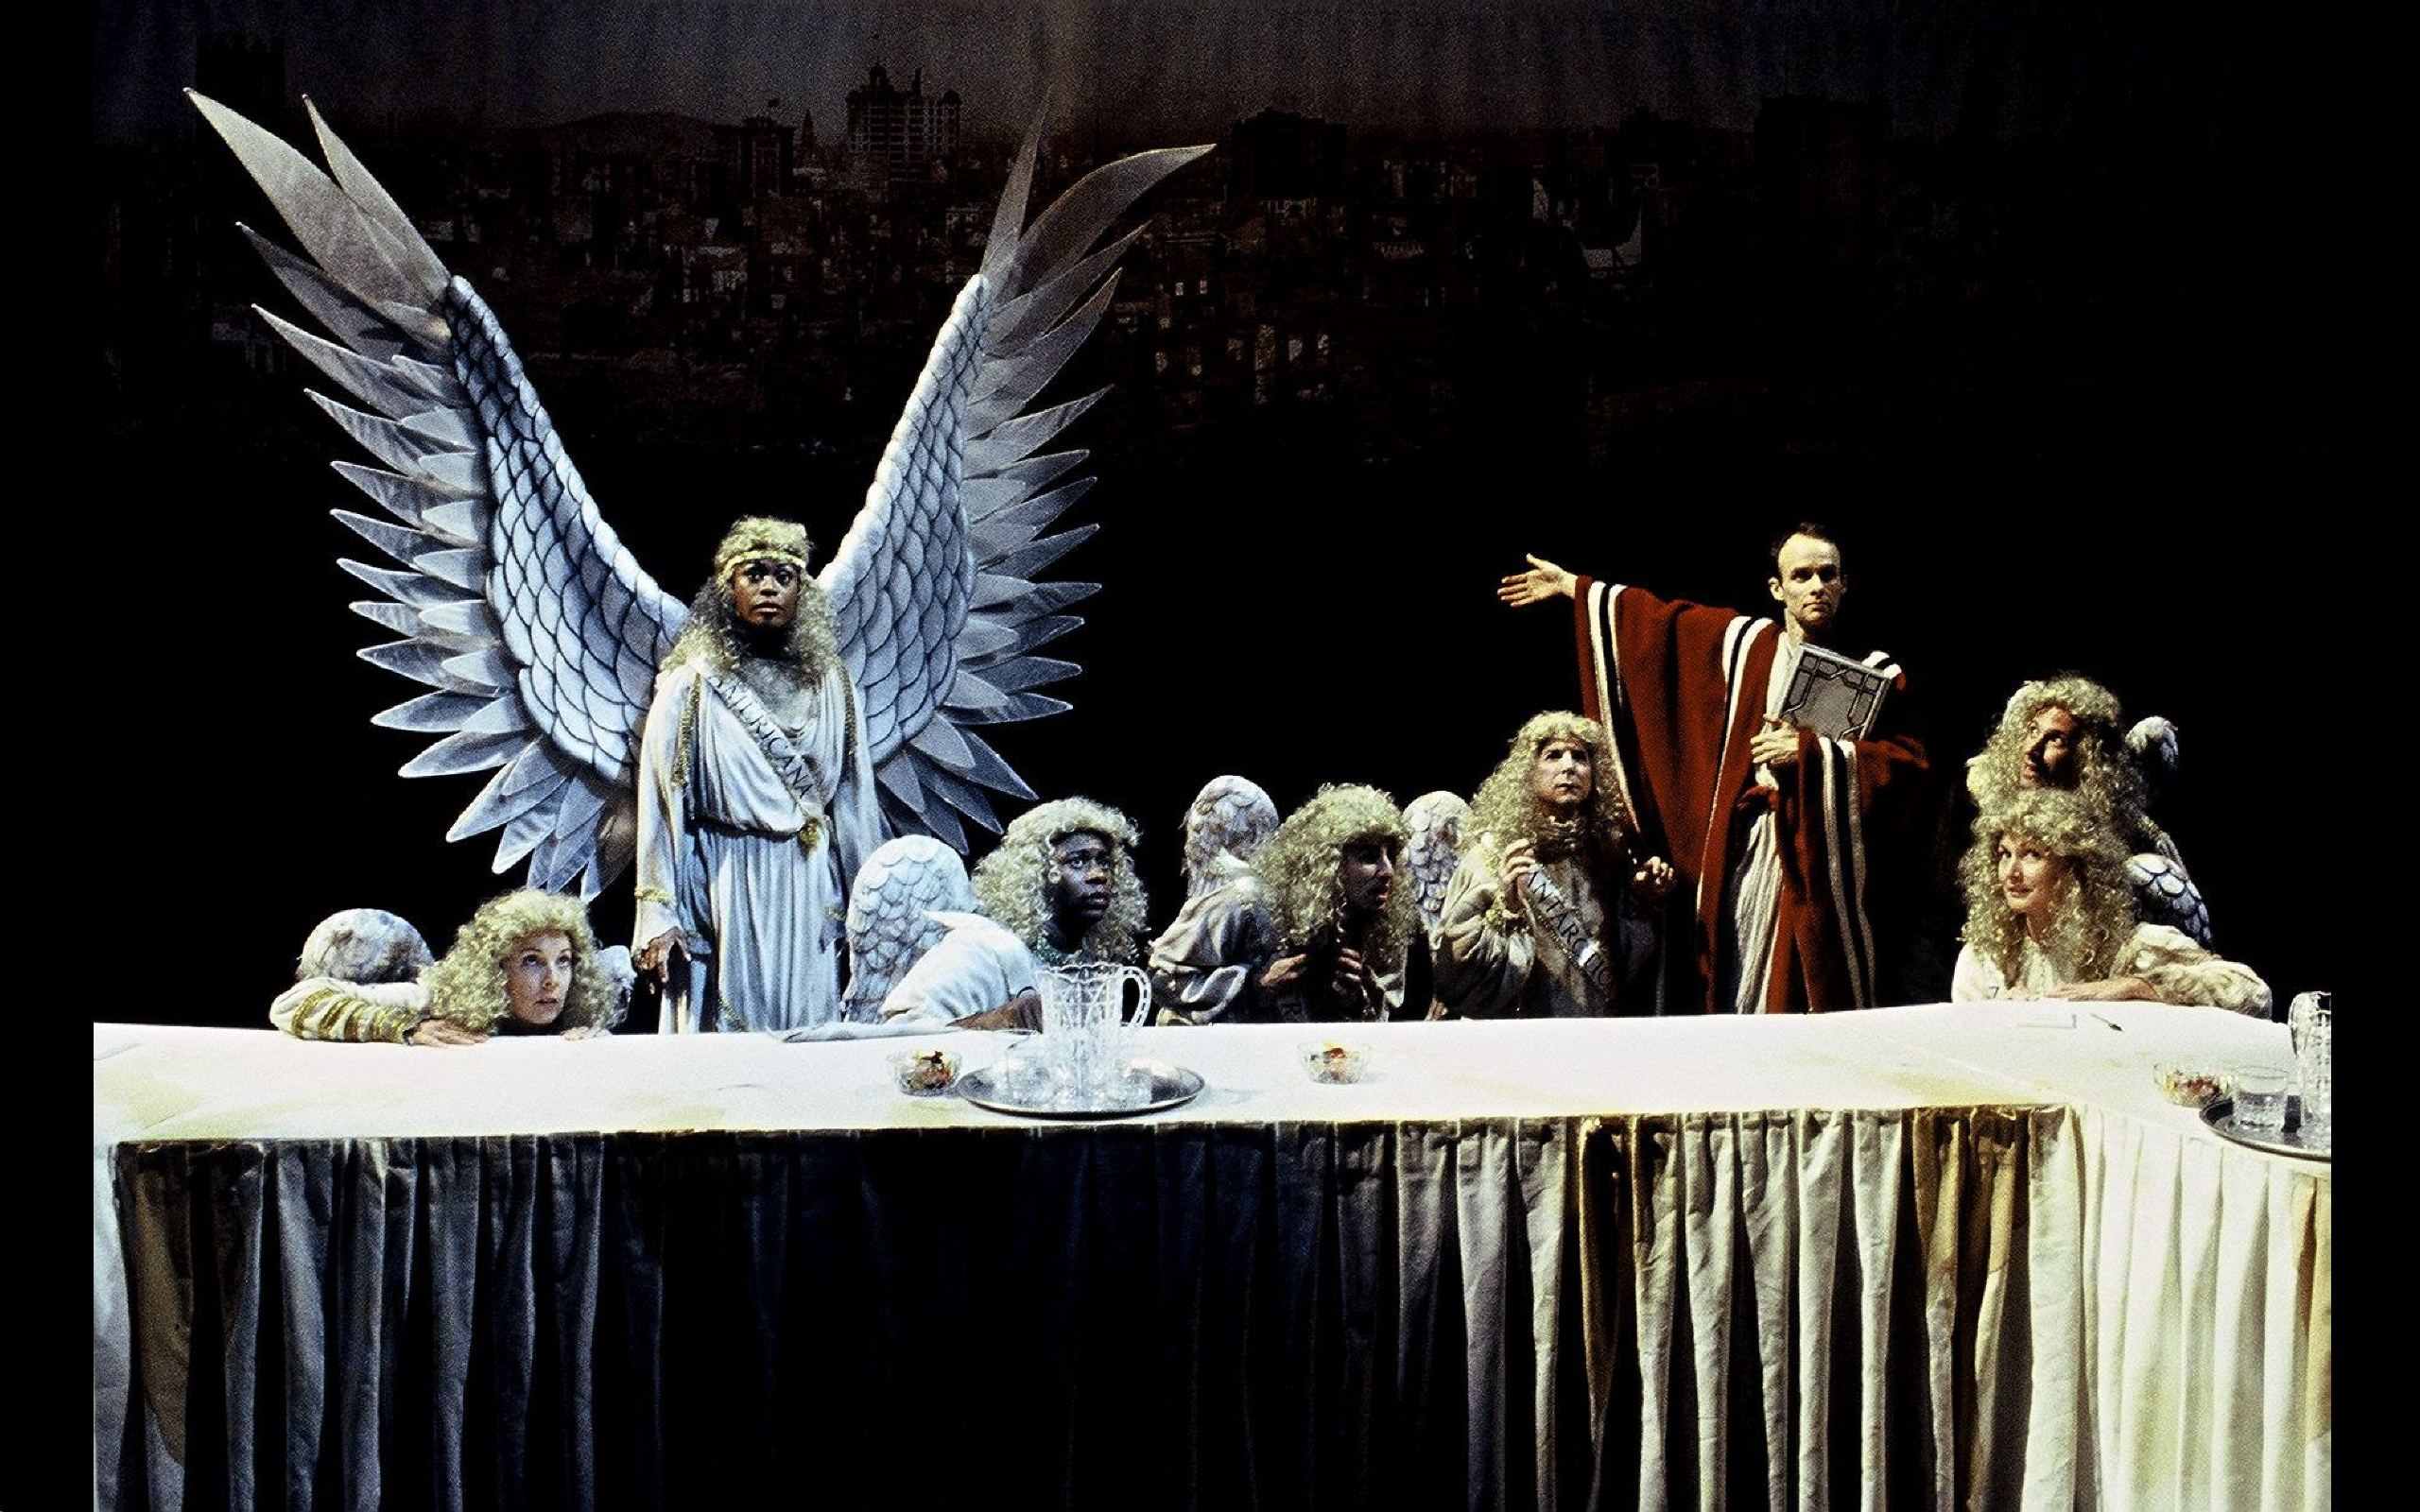 Actors Theatre. 2002. Angels in America - Millennium Approaches and Perestroika. Cathy Dresbach, Lillie Richardson, Alvin Keith, Christopher Williams, Jon Gentry, Oliver Wadsworth, Natalie Inglish Nesbitt and Rusty Ferracane.